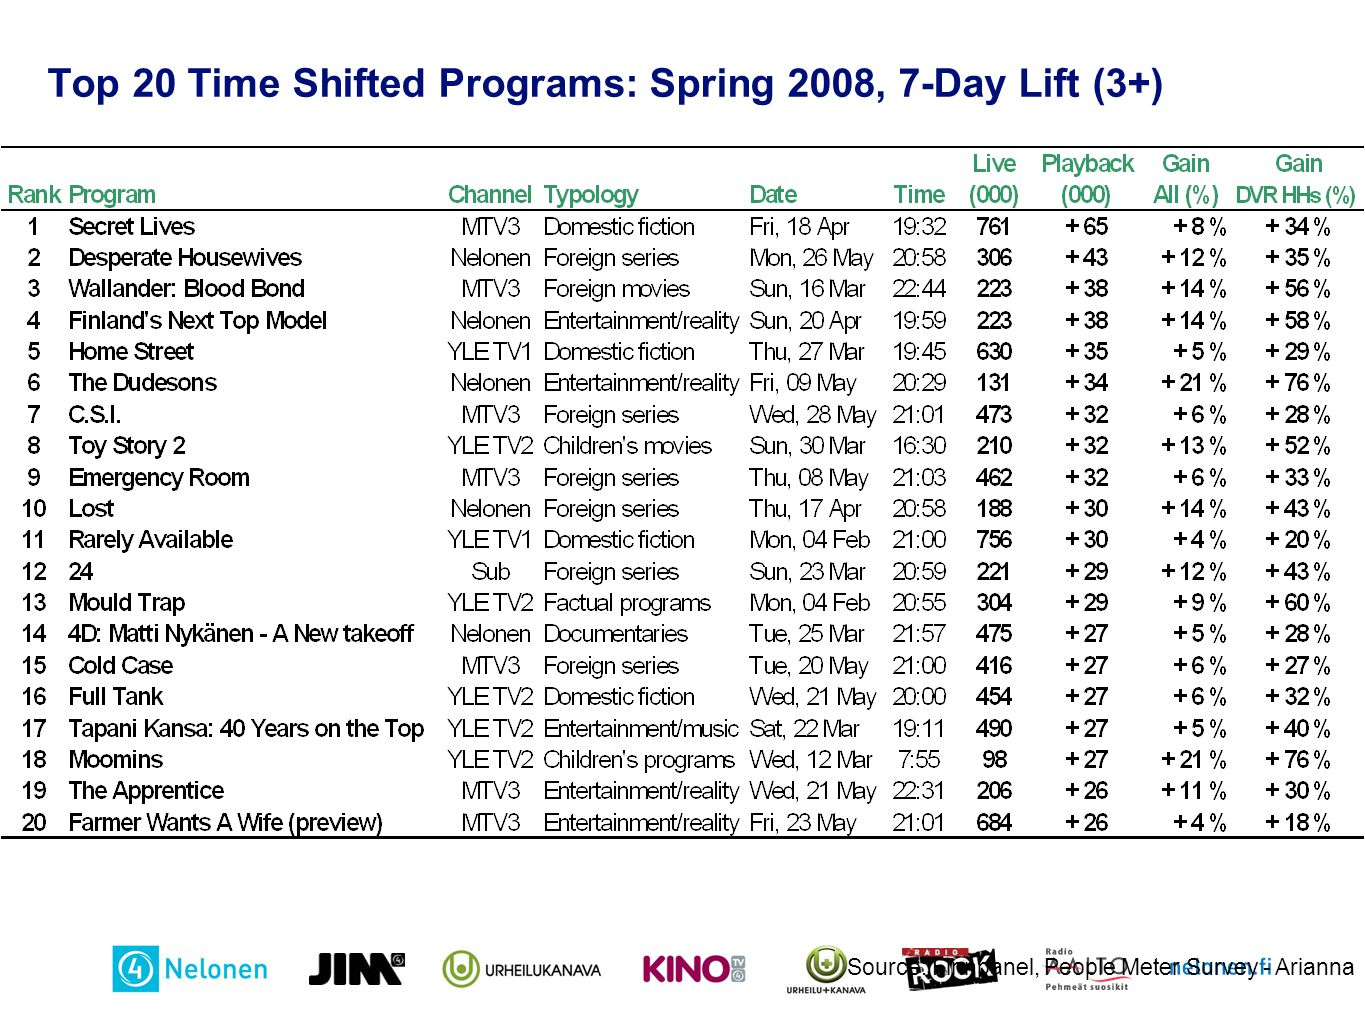 Top 20 Time Shifted Programs: Spring 2008, 7-Day Lift (3+)